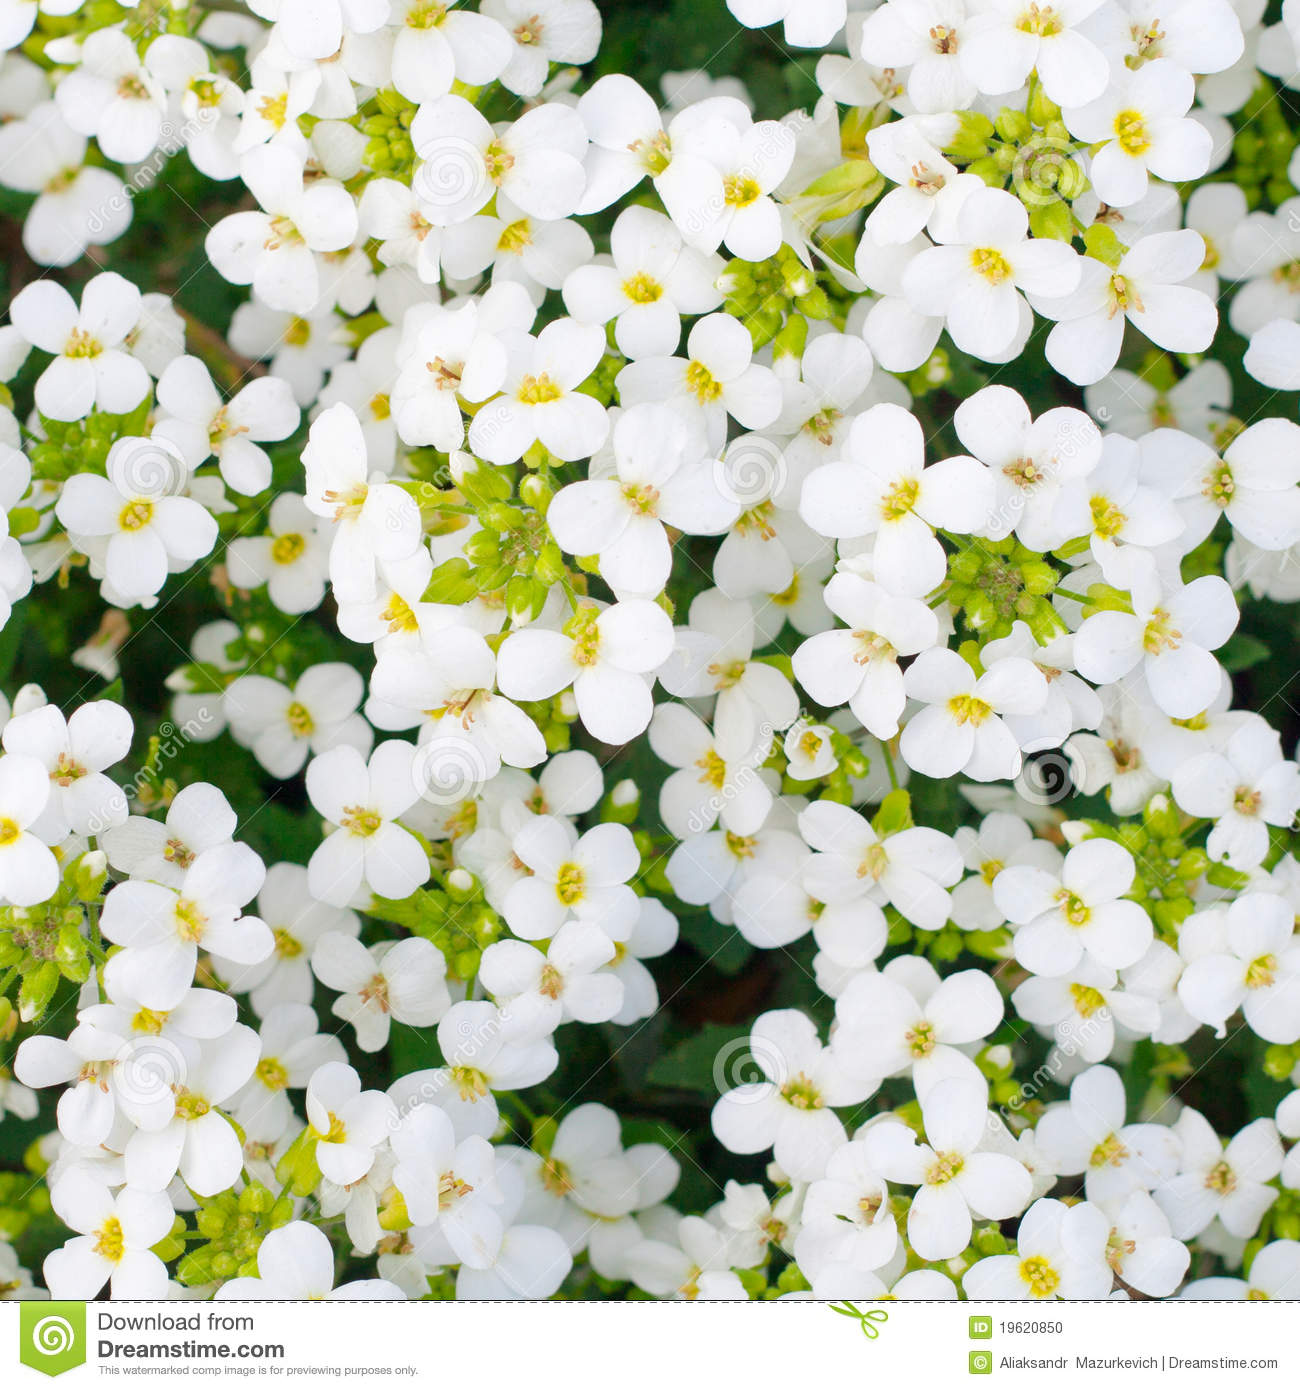 Pretty White Flowers Blooming Stock Photo Image Of Green Botany